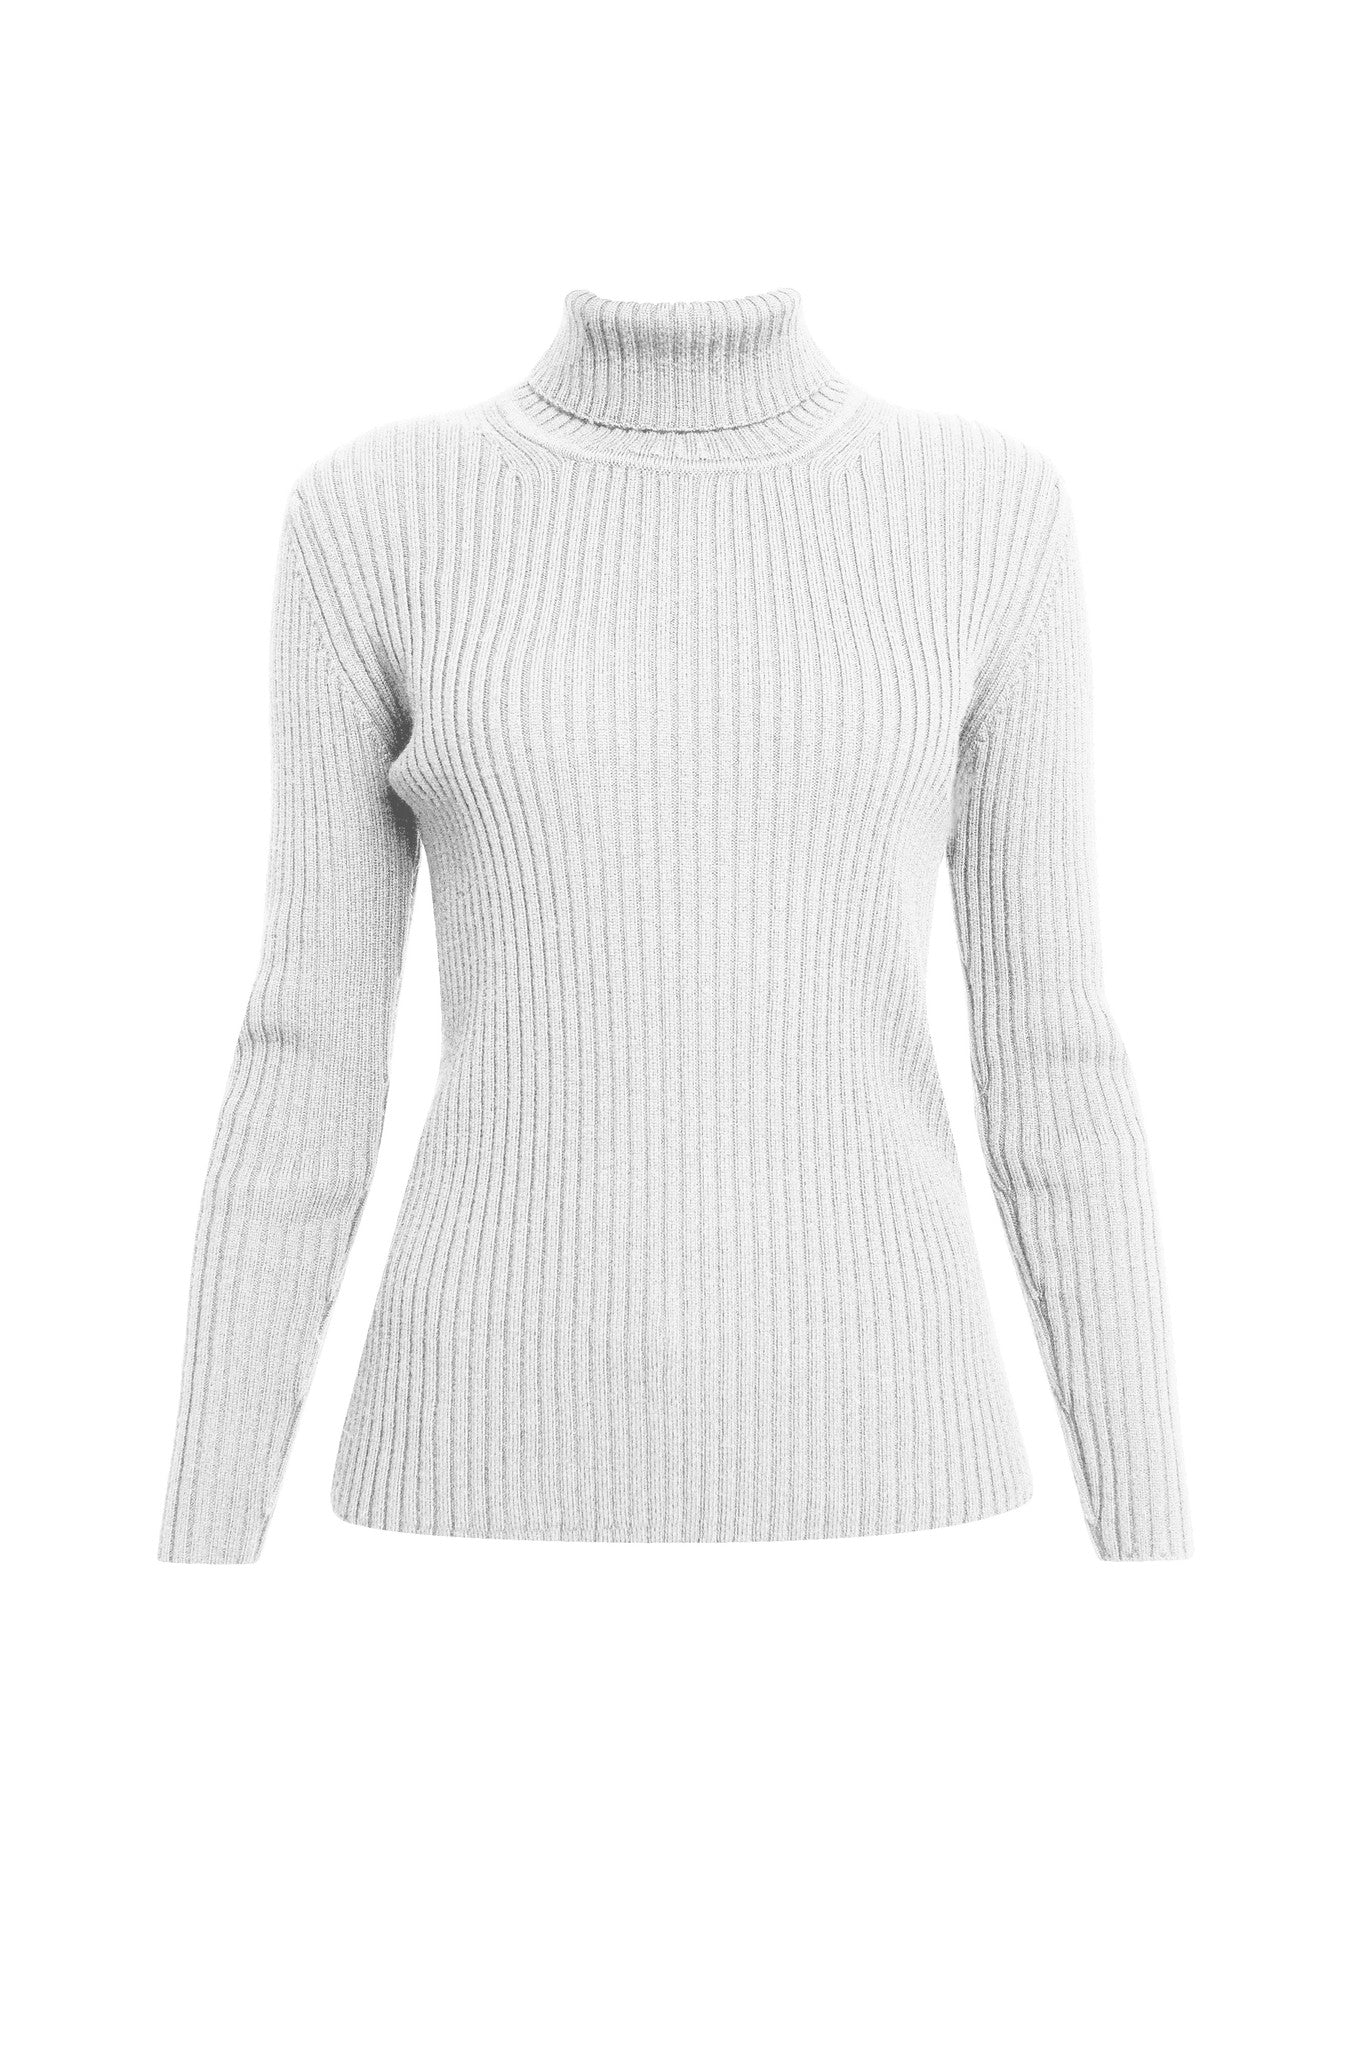 White ribbed-knit turtleneck sweater